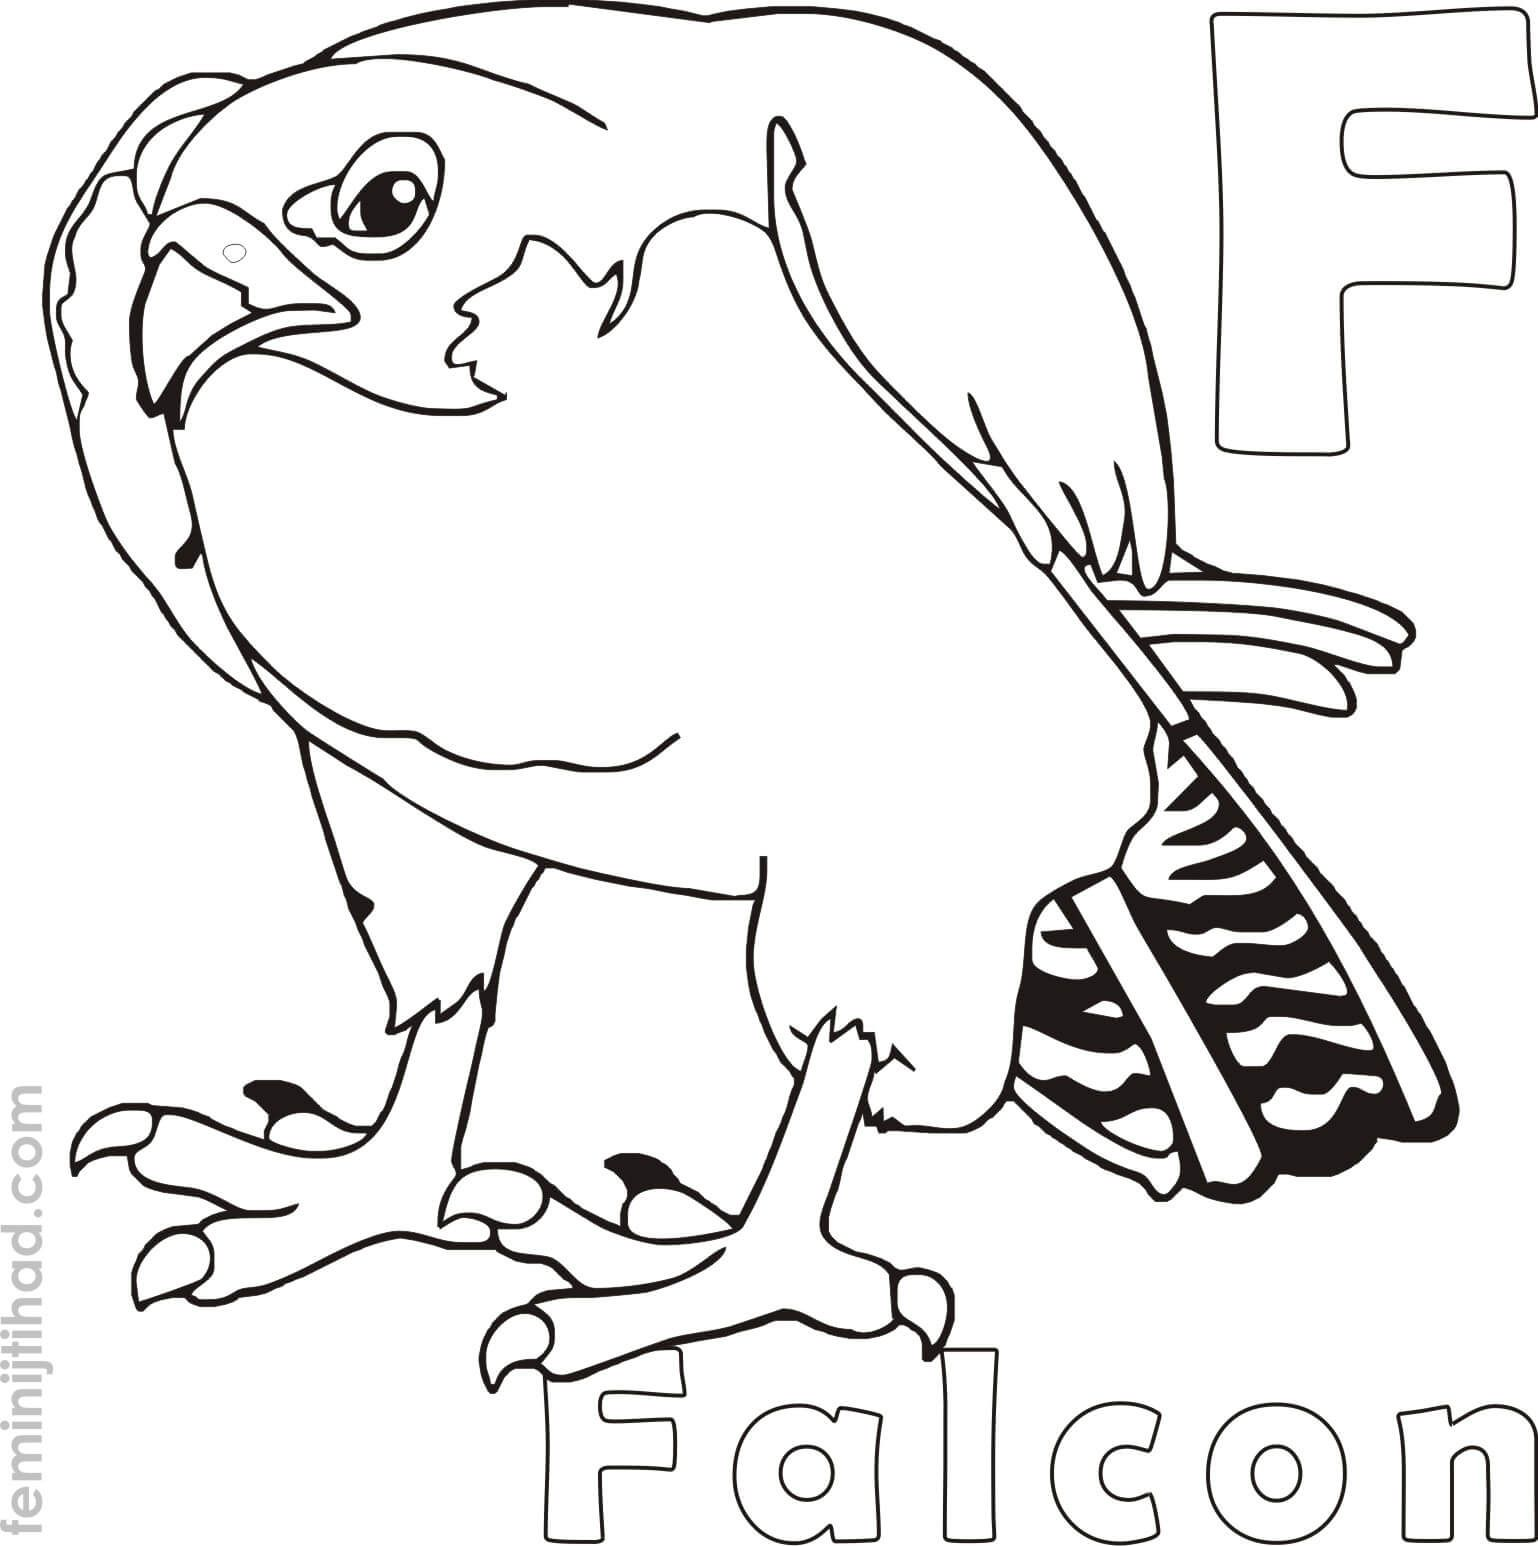 F For Falcon Coloring Pages To Print Bird coloring pages